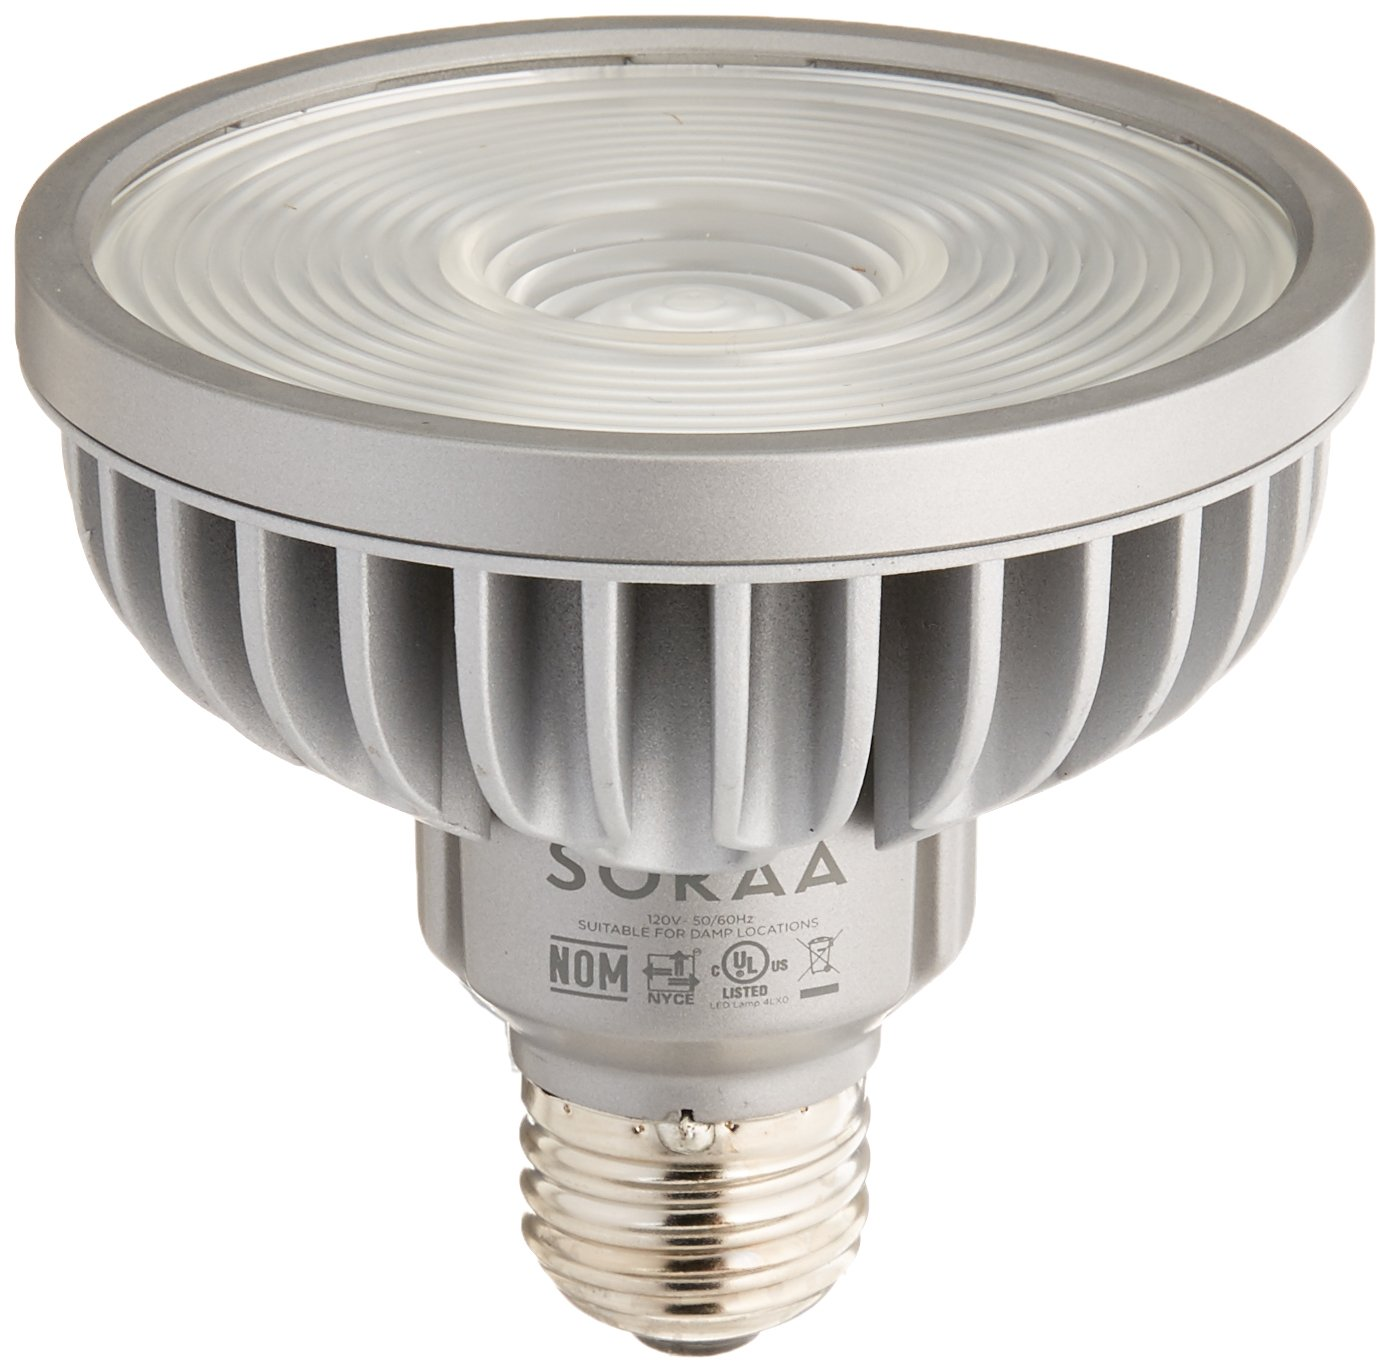 Bulbrite SP30S-18-60D-927-03 SORAA 18.5W LED PAR30S 2700K VIVID 60° Dimmable Light Bulb, Silver